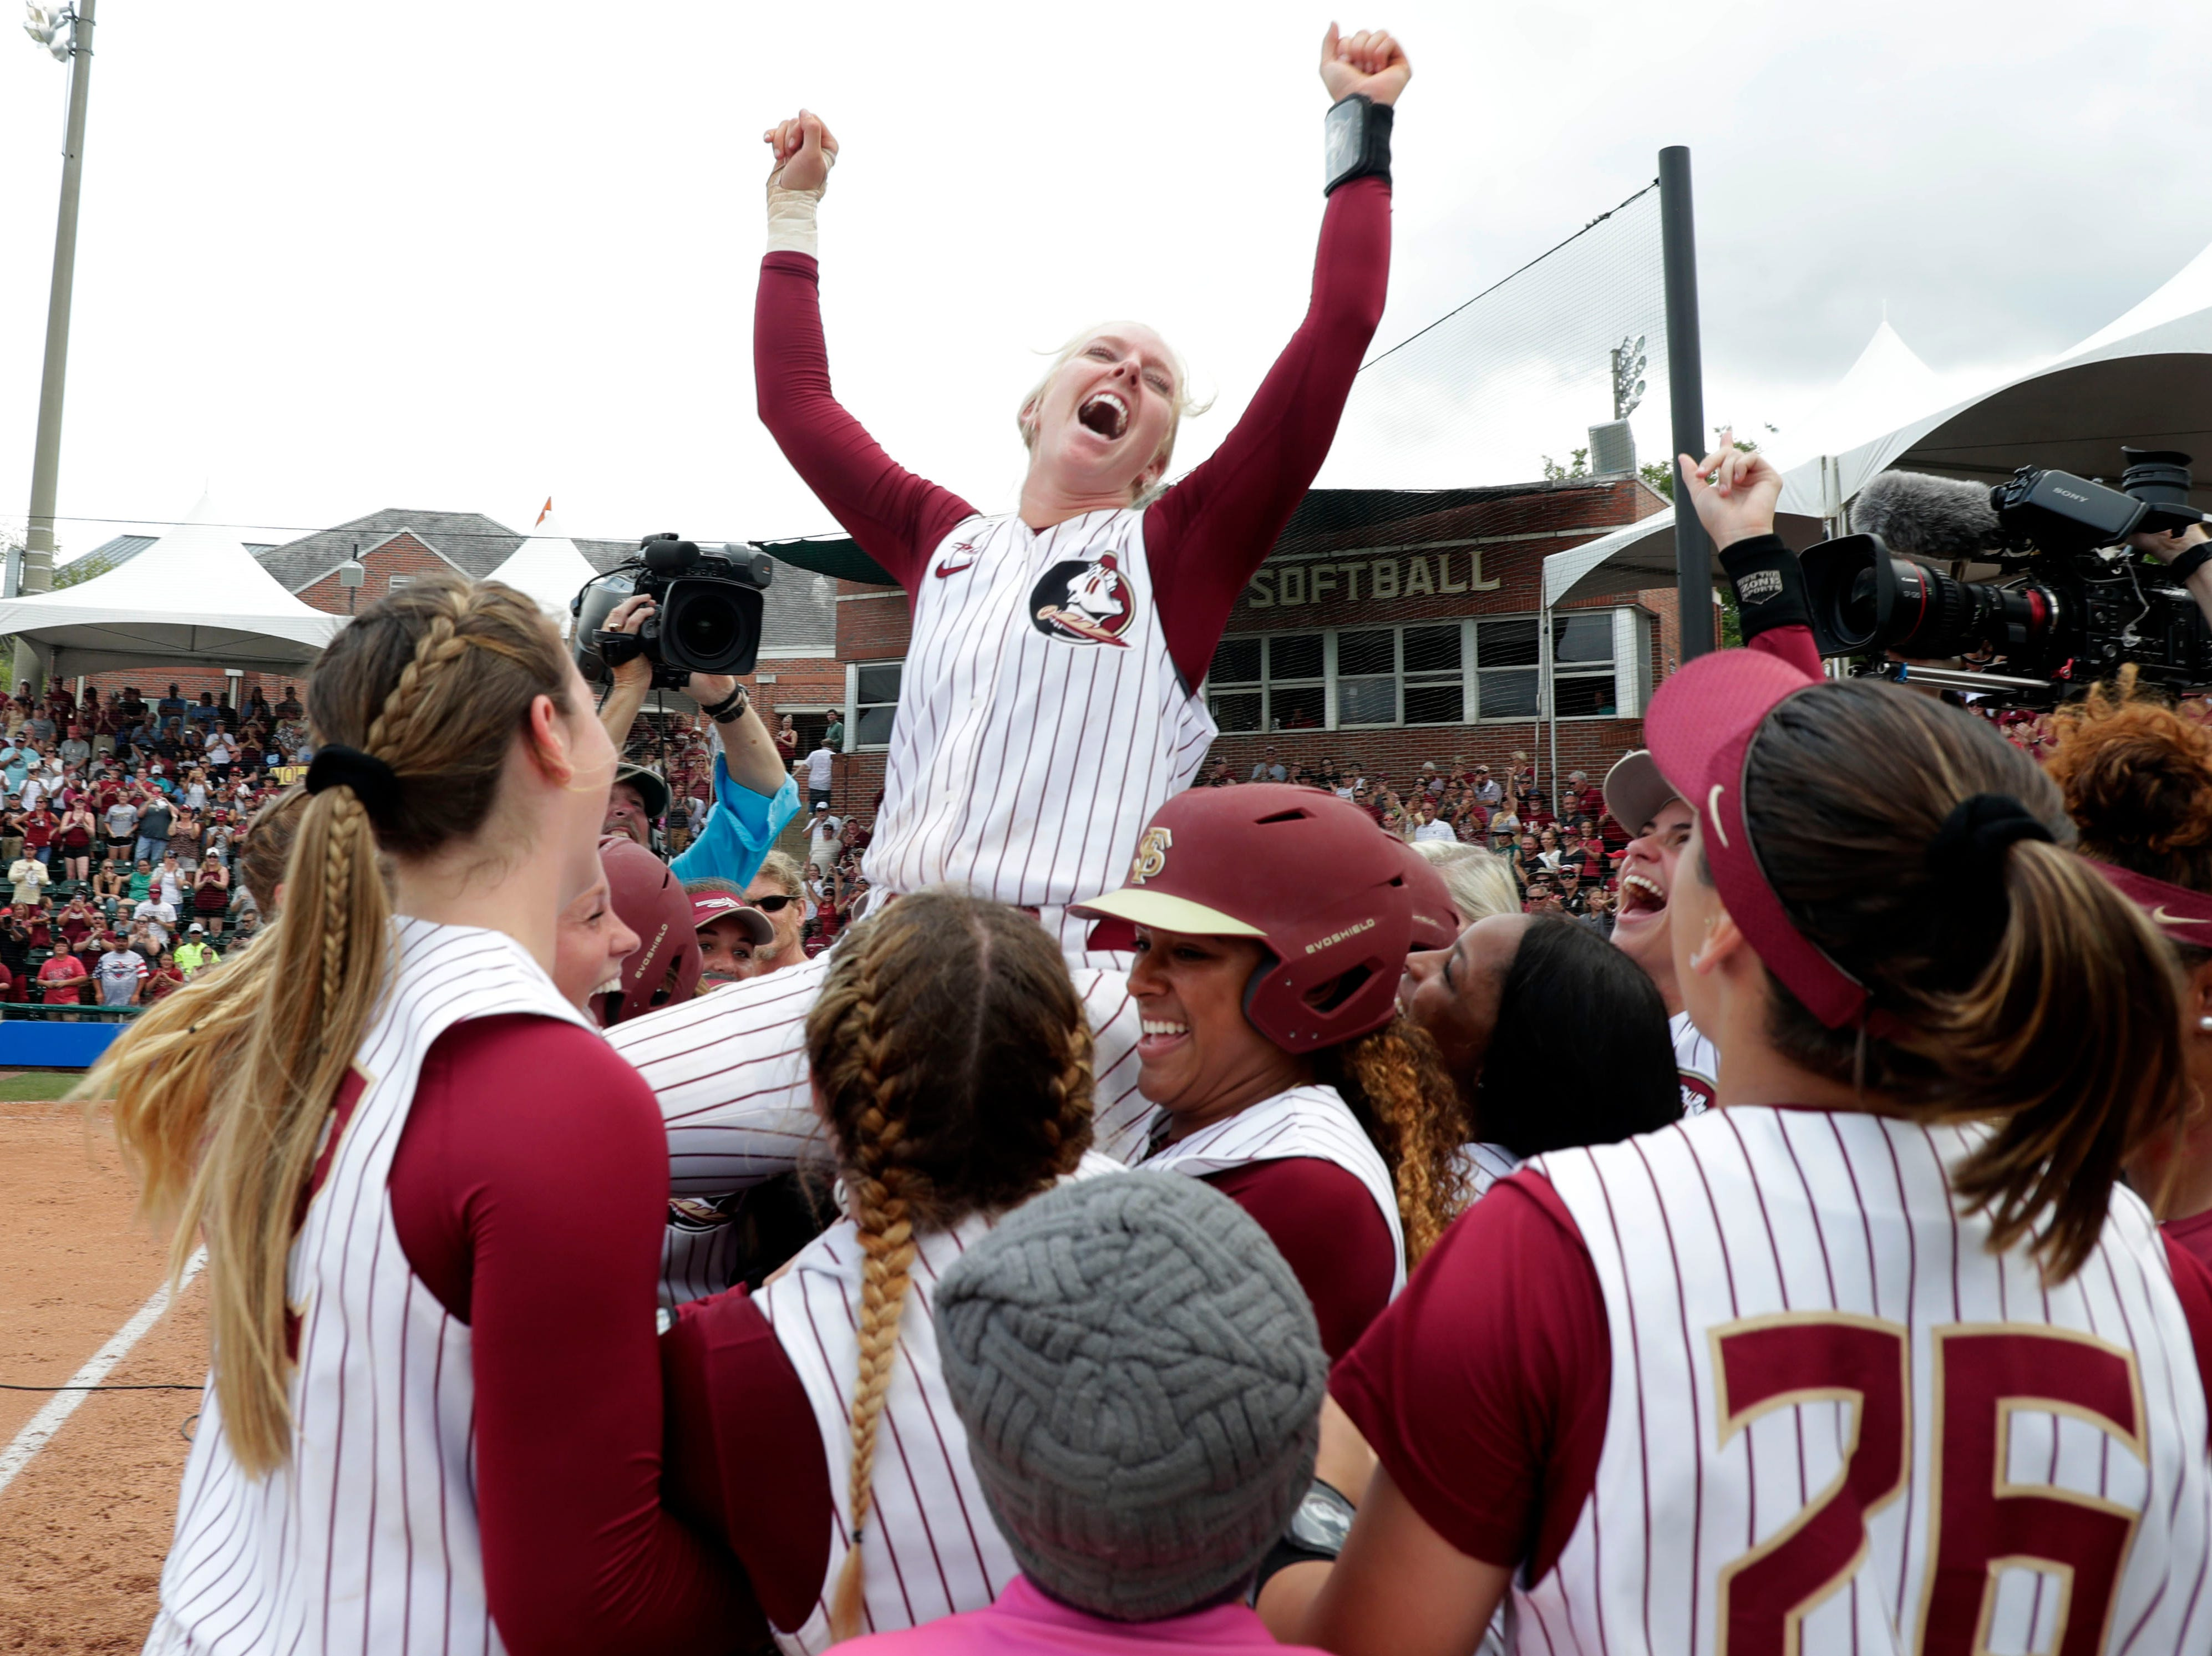 Florida State Seminoles utility player Sydney Sherrill (24) is lifted up by her teammates. The Florida State Seminoles celebrate their victory over the UNC Tar Heels for the ACC Softball Championship title Saturday, May 11, 2019.